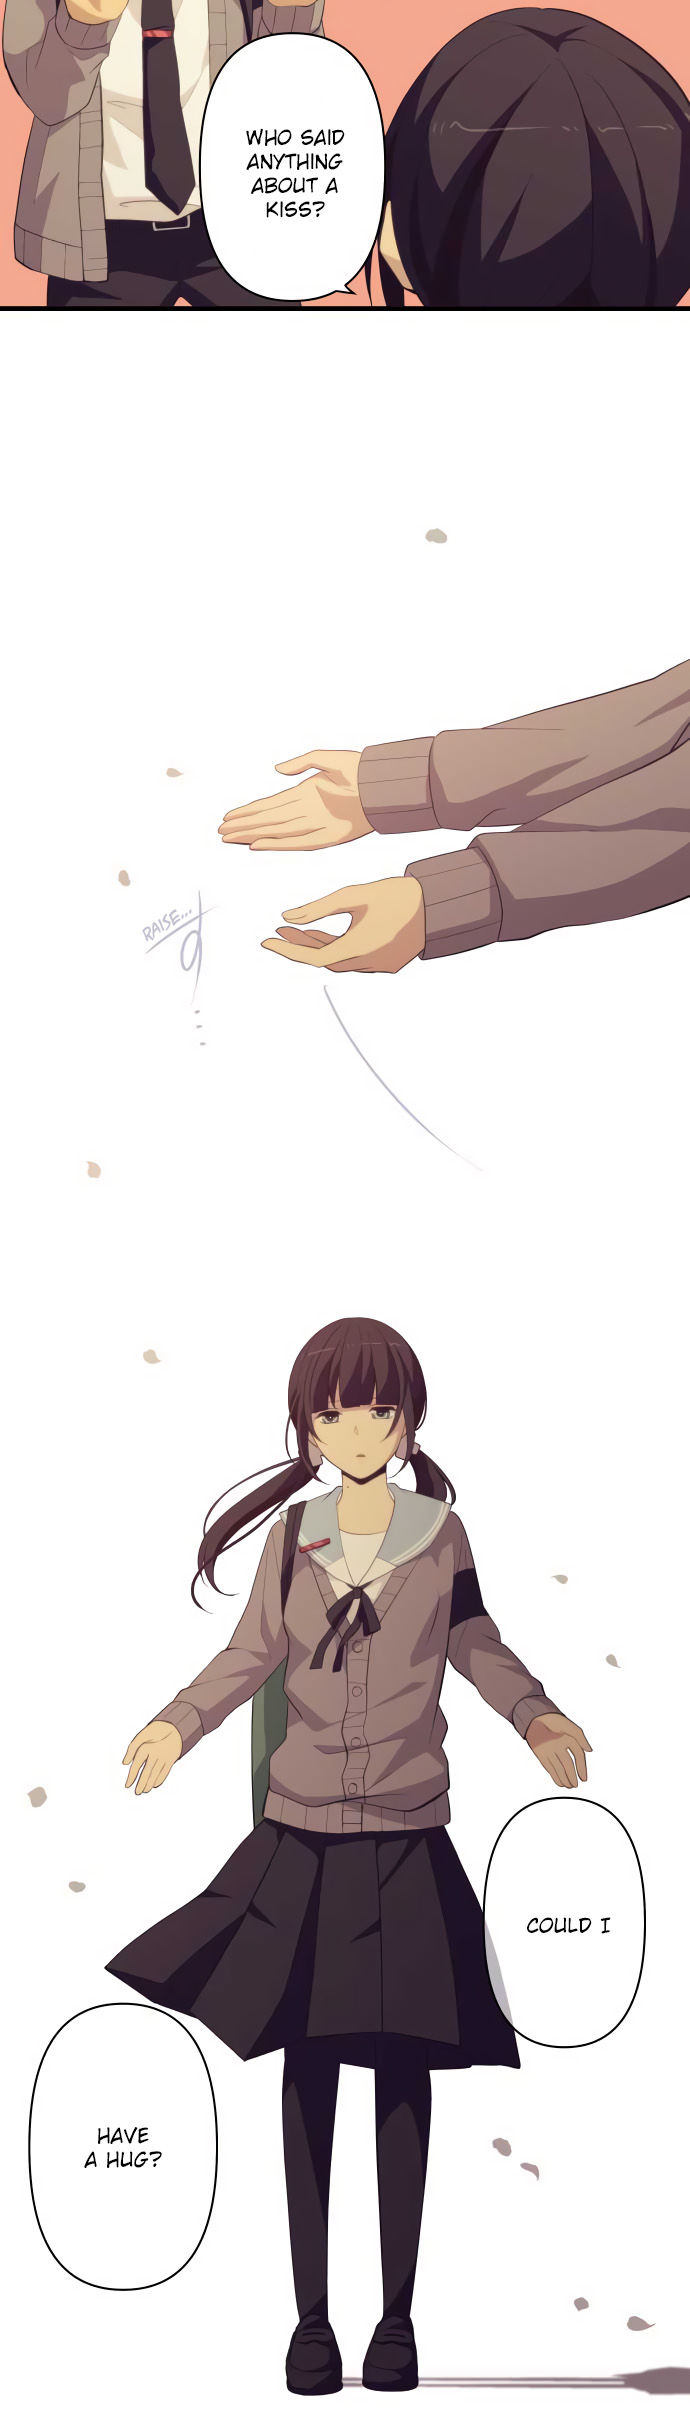 ReLIFE 213 Page 2